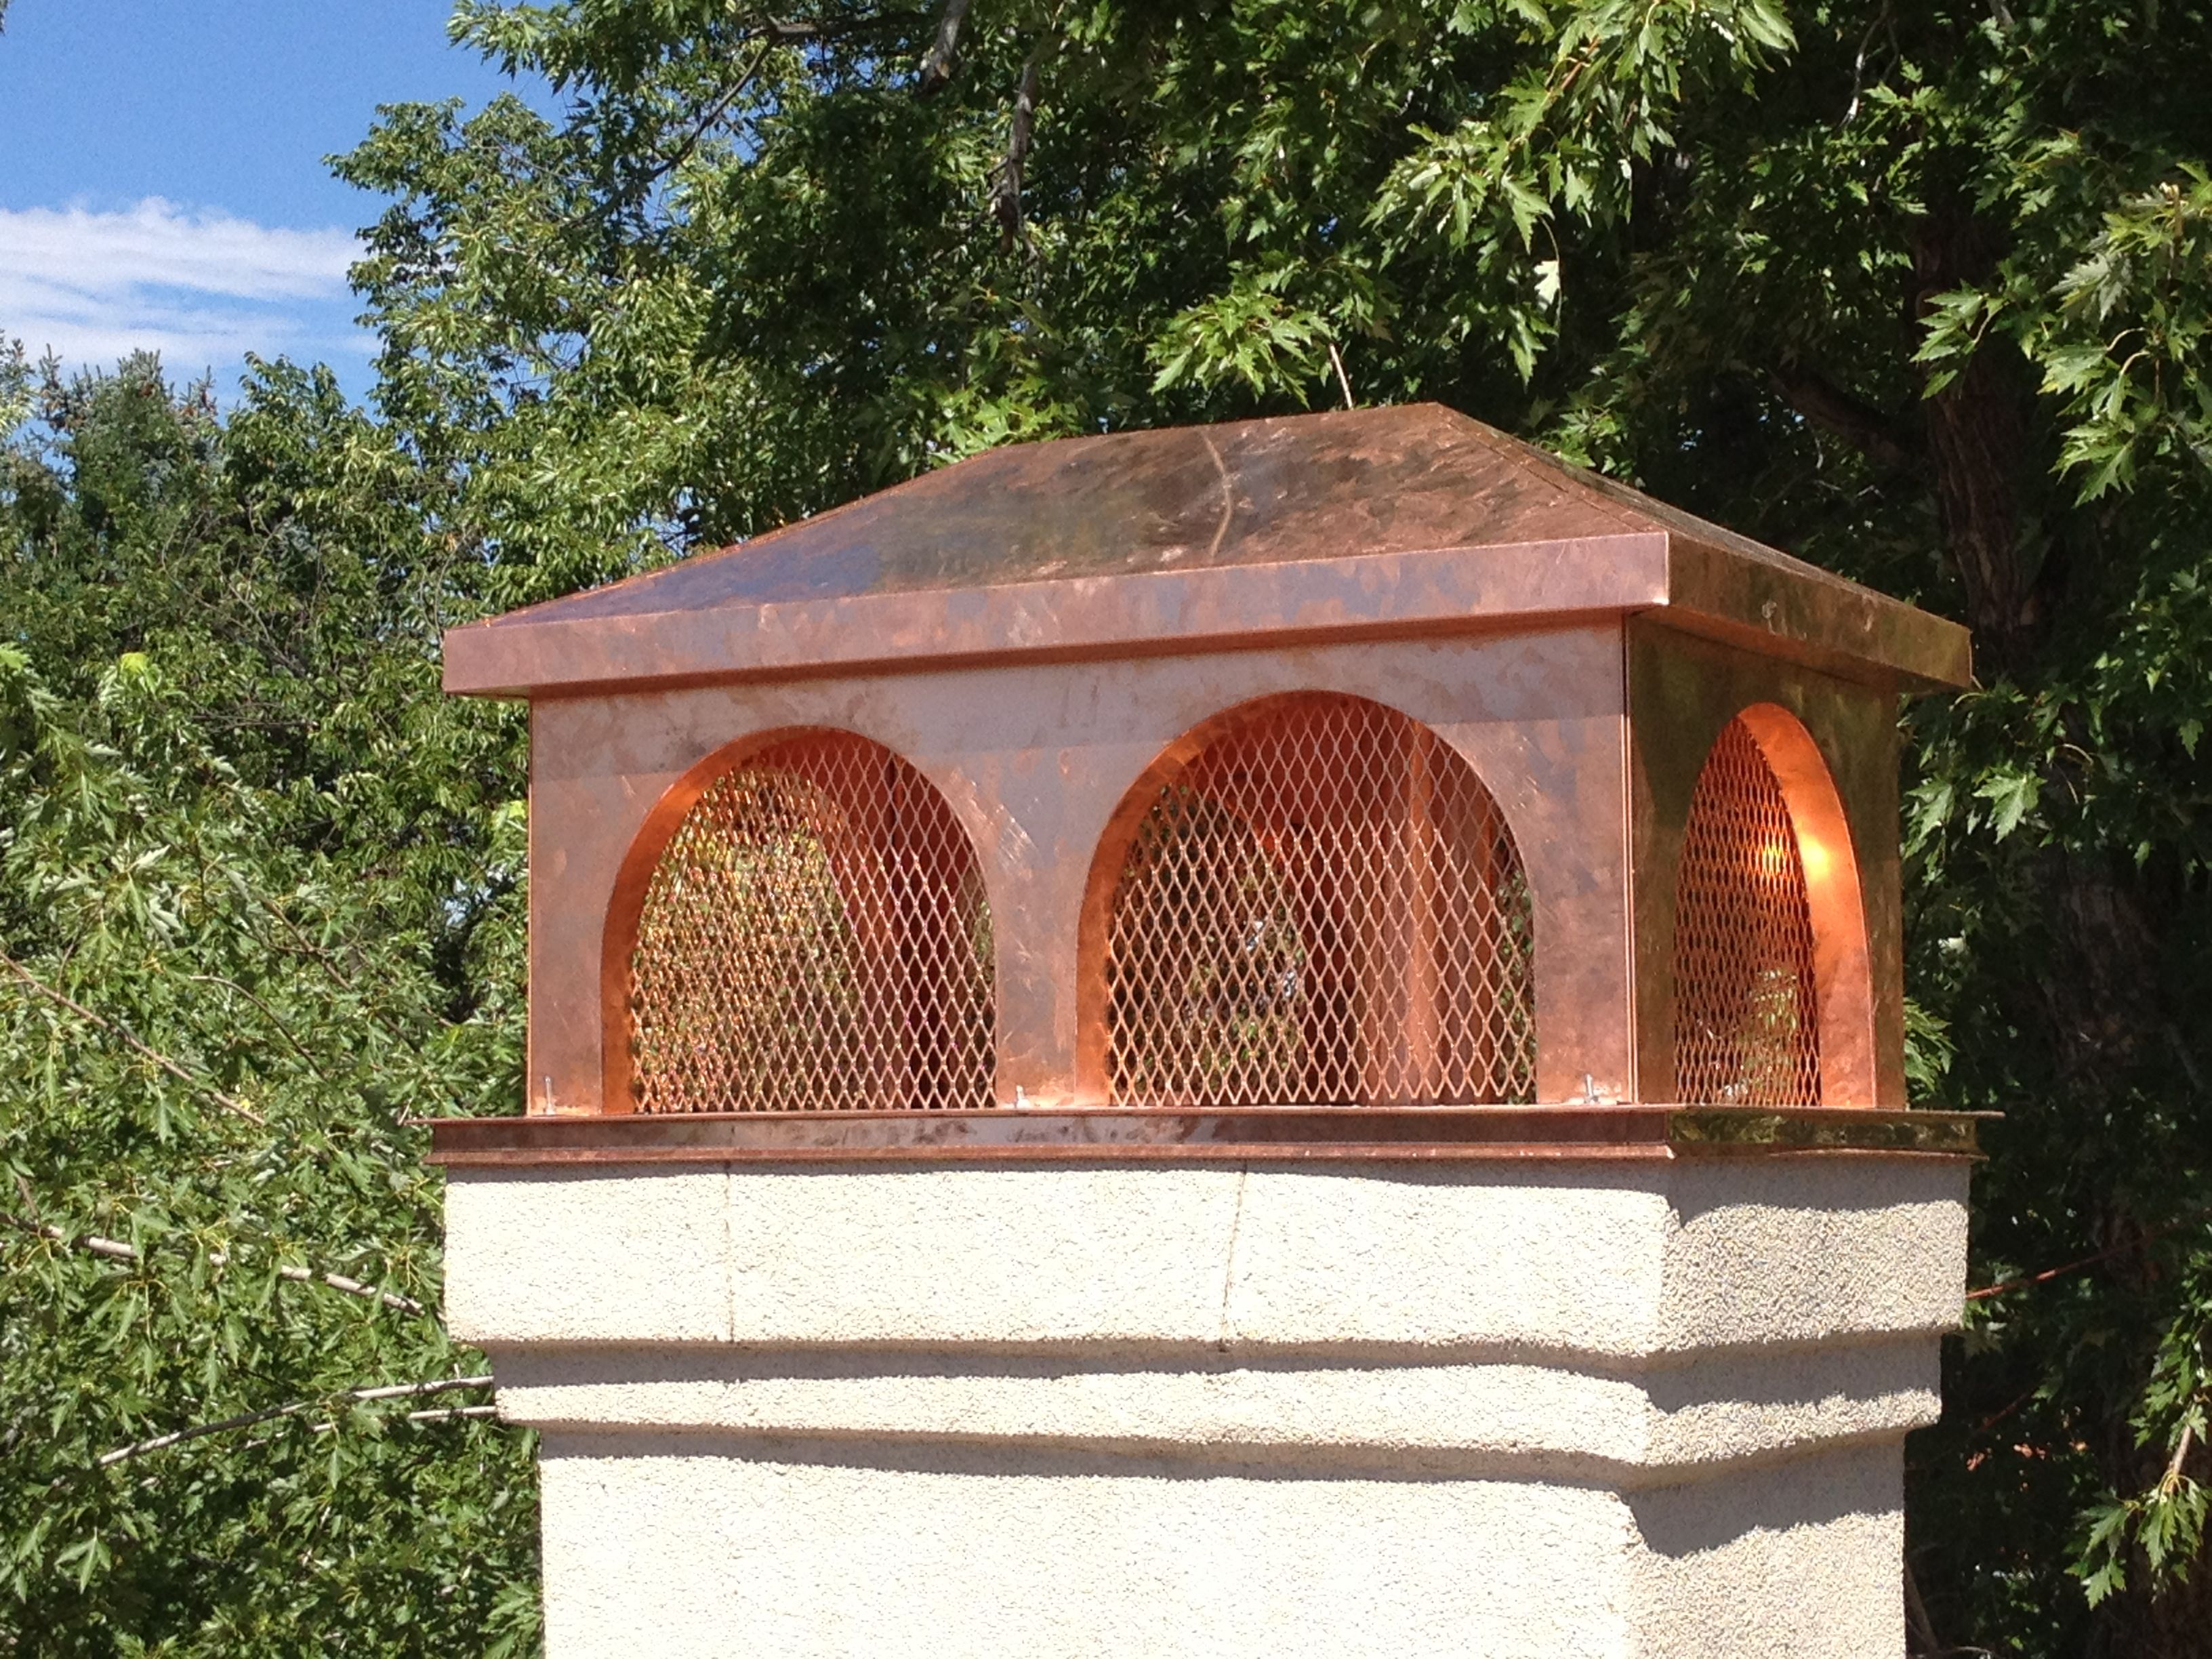 Italian Style Copper Chimney Cap Raleighroofing@Yahoocom